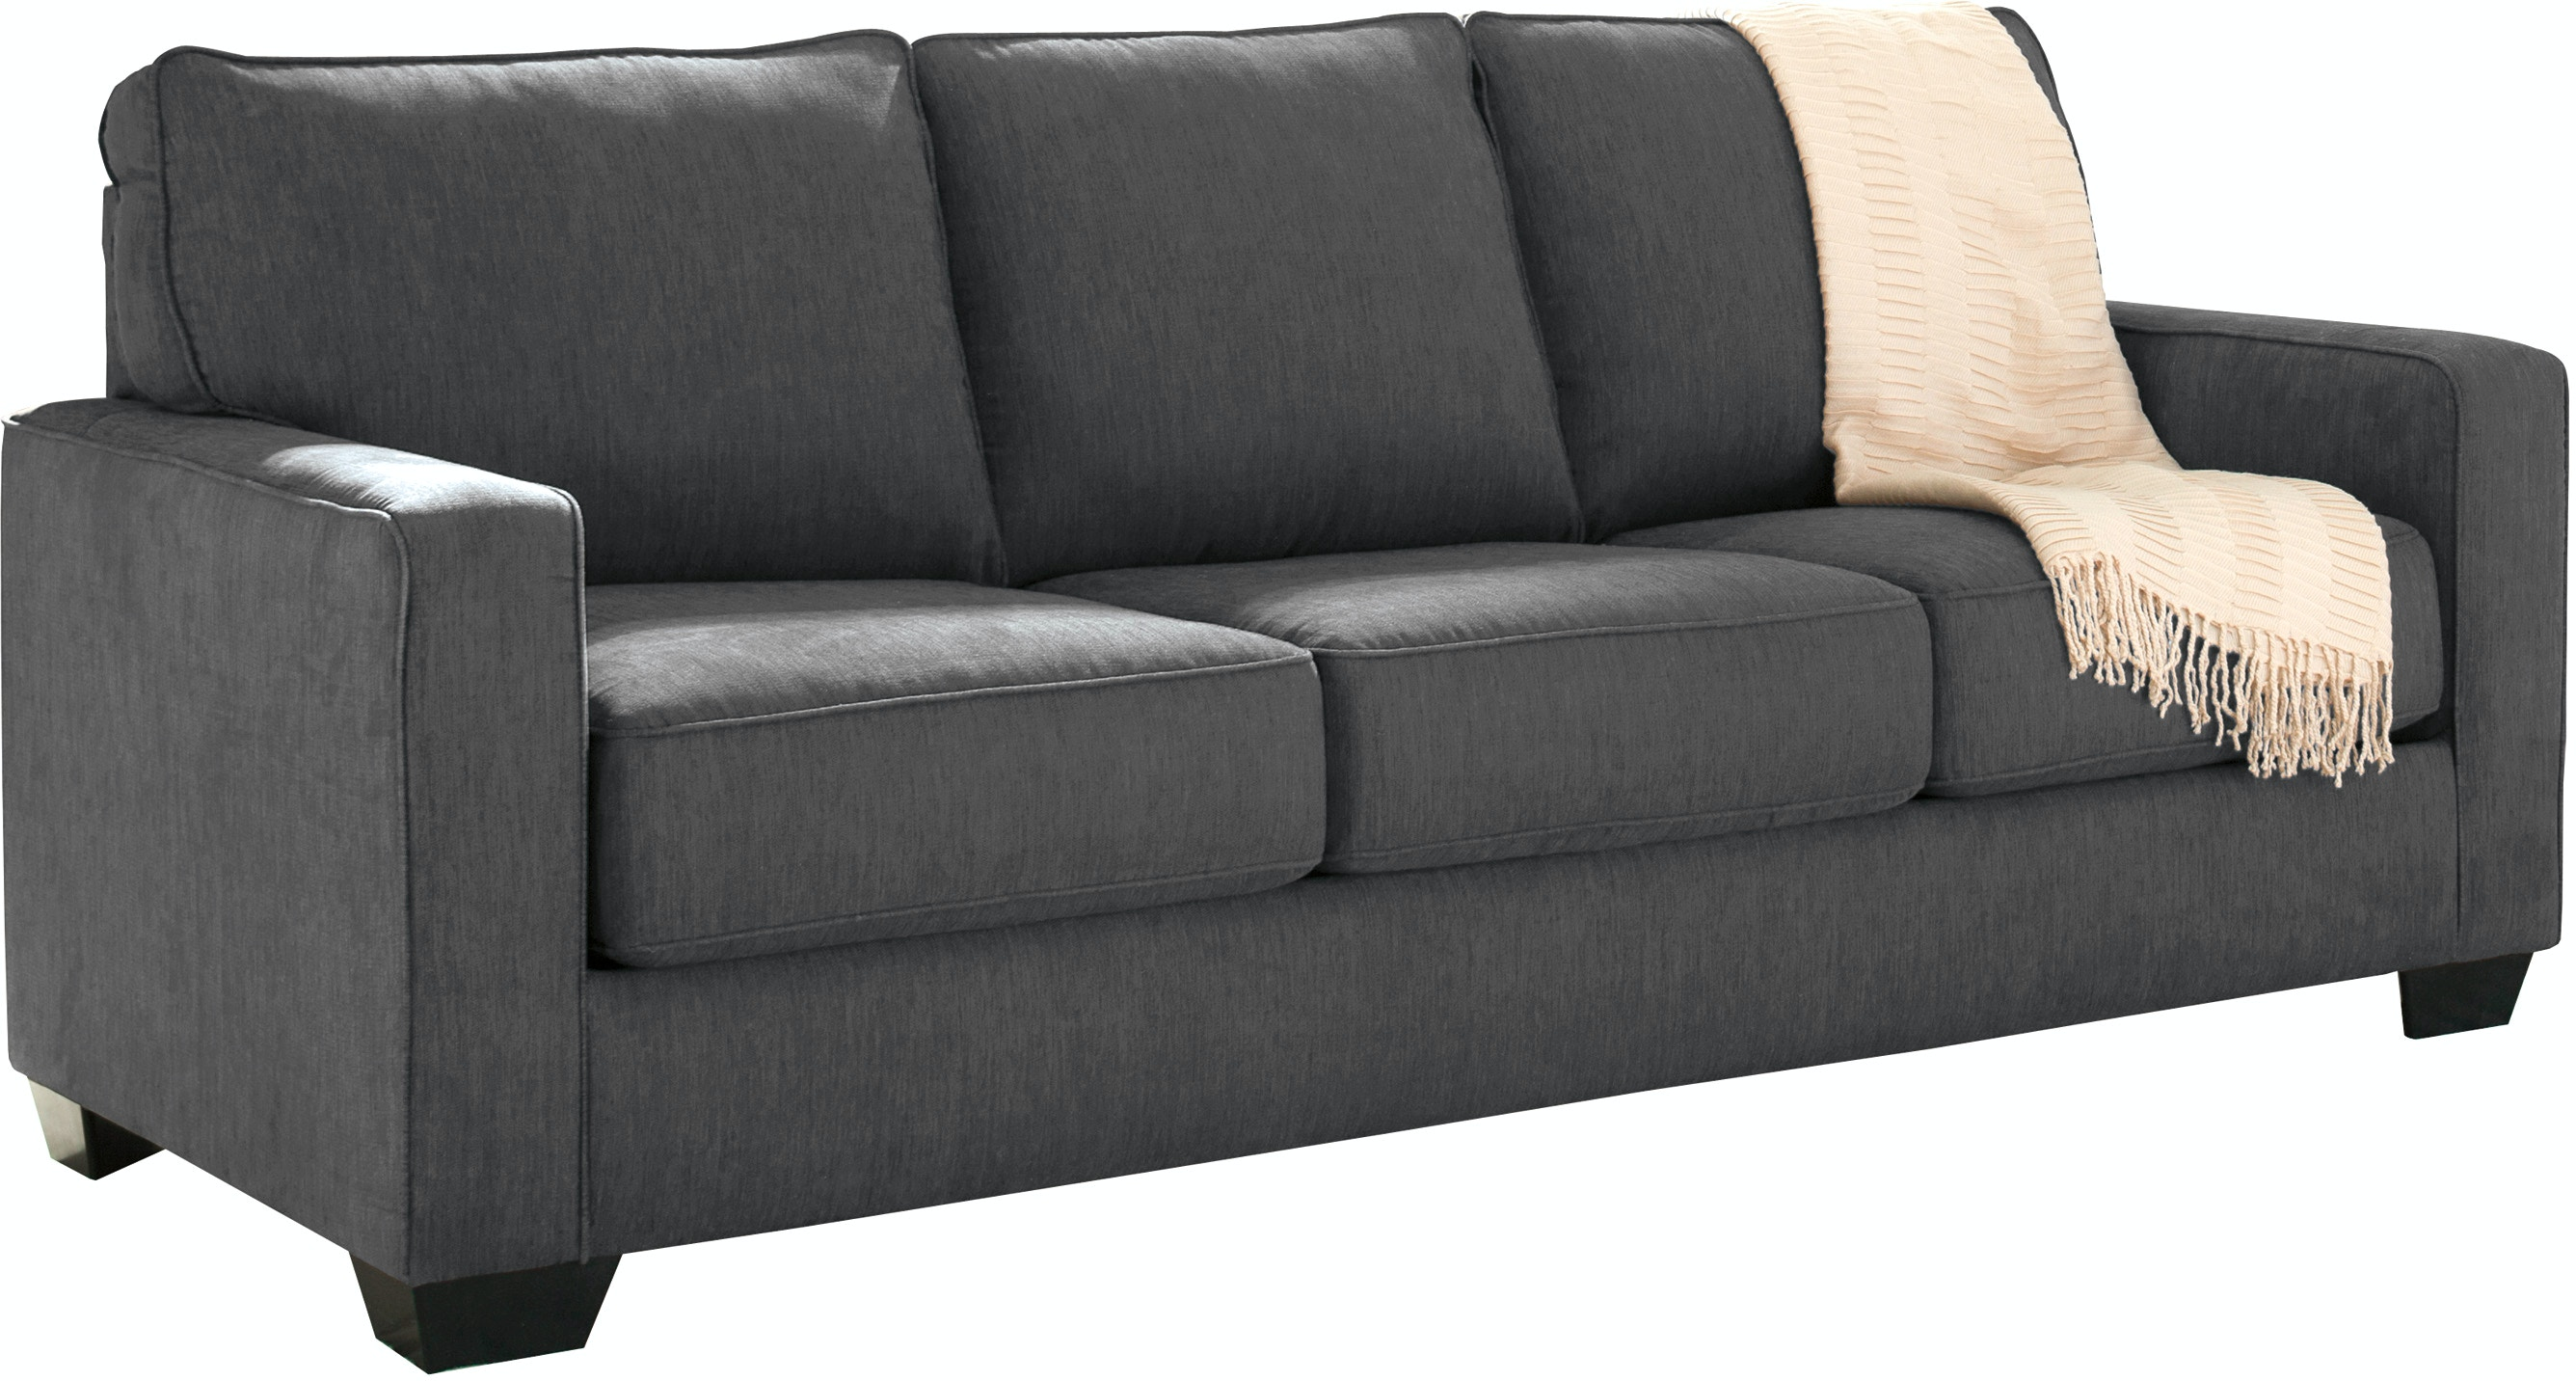 Zoie Sleeper Sofa - GREY - QUEEN ST:487014